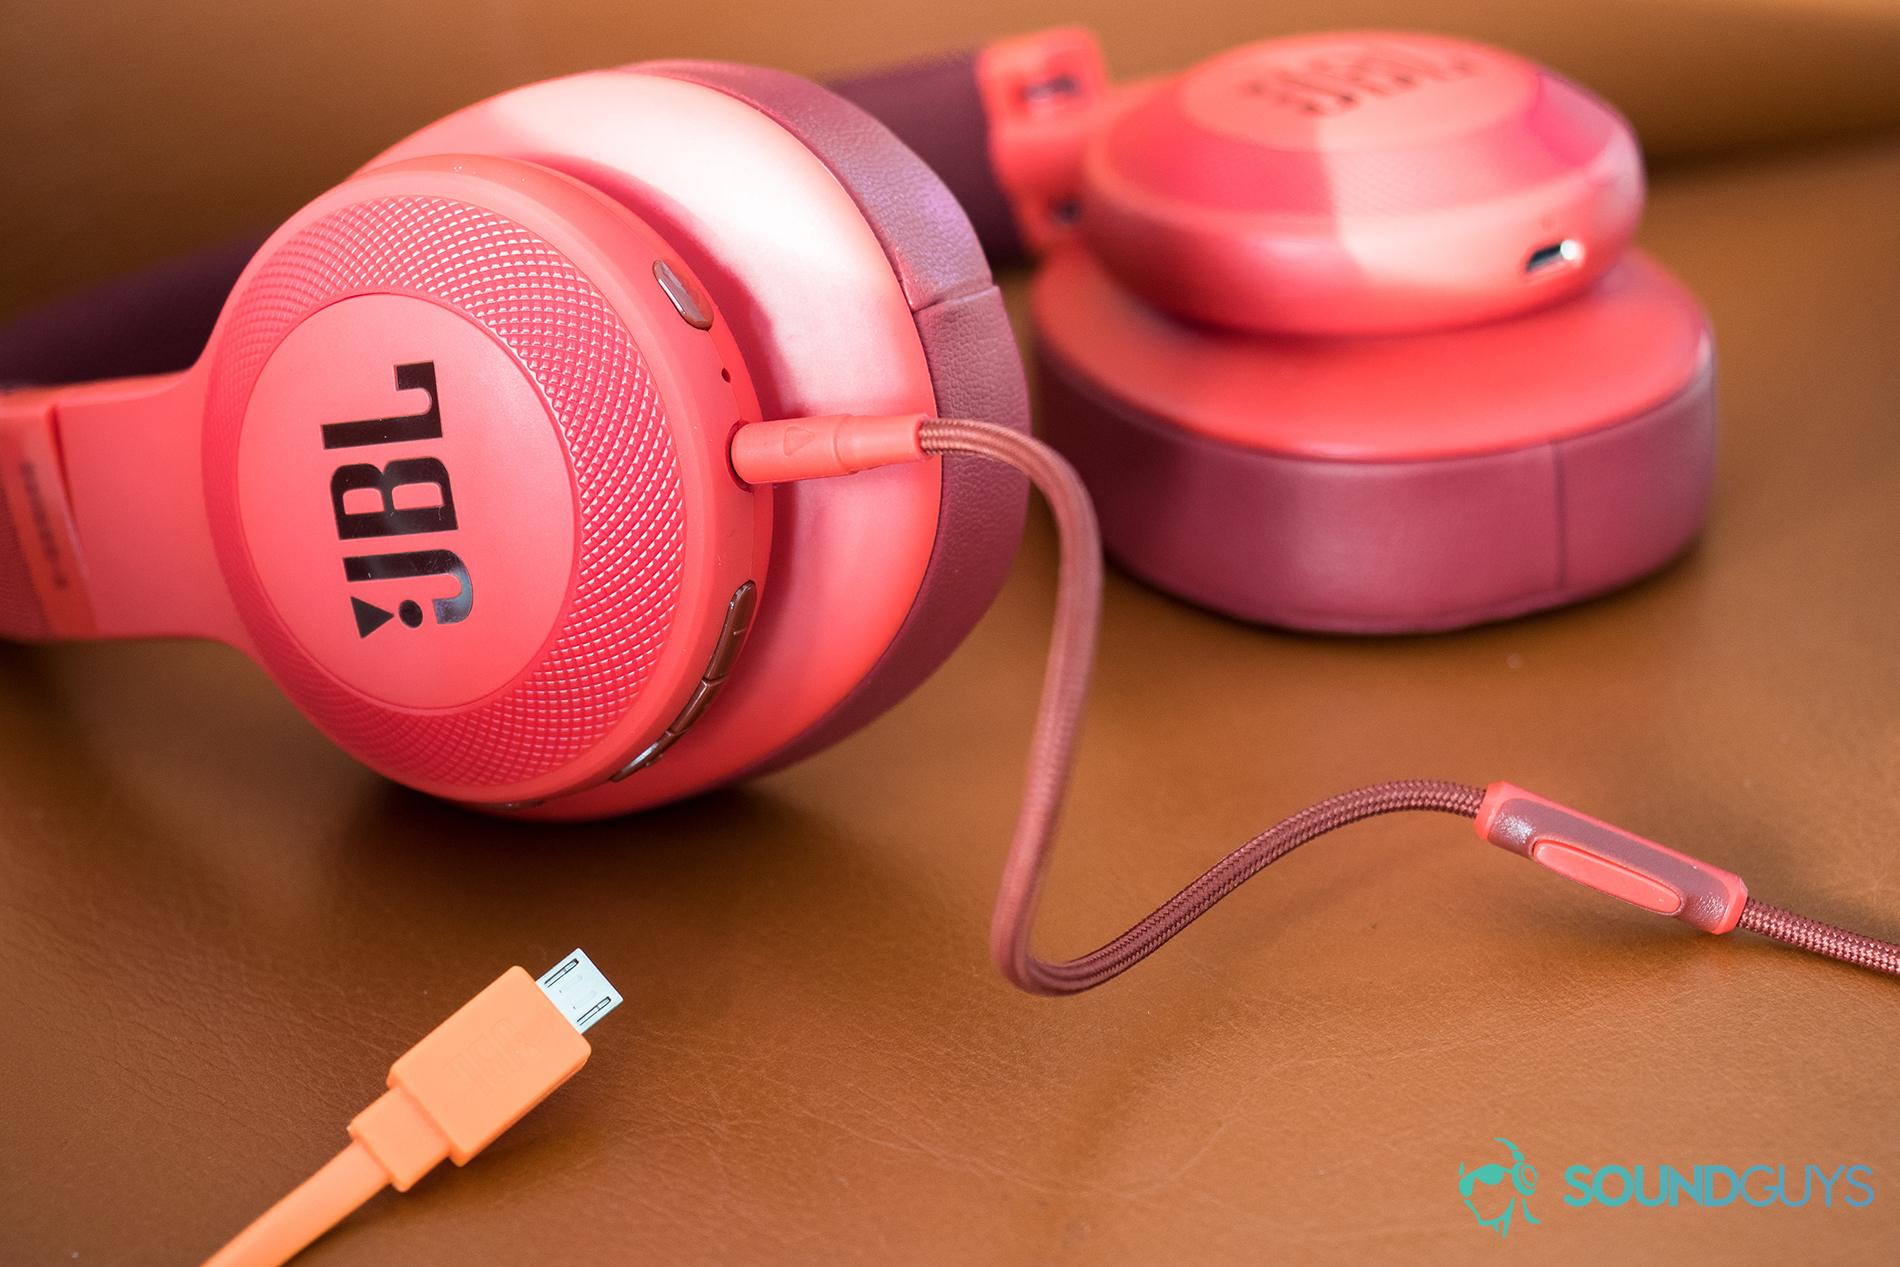 JBL E55BT review: Wide soundstage with some lag